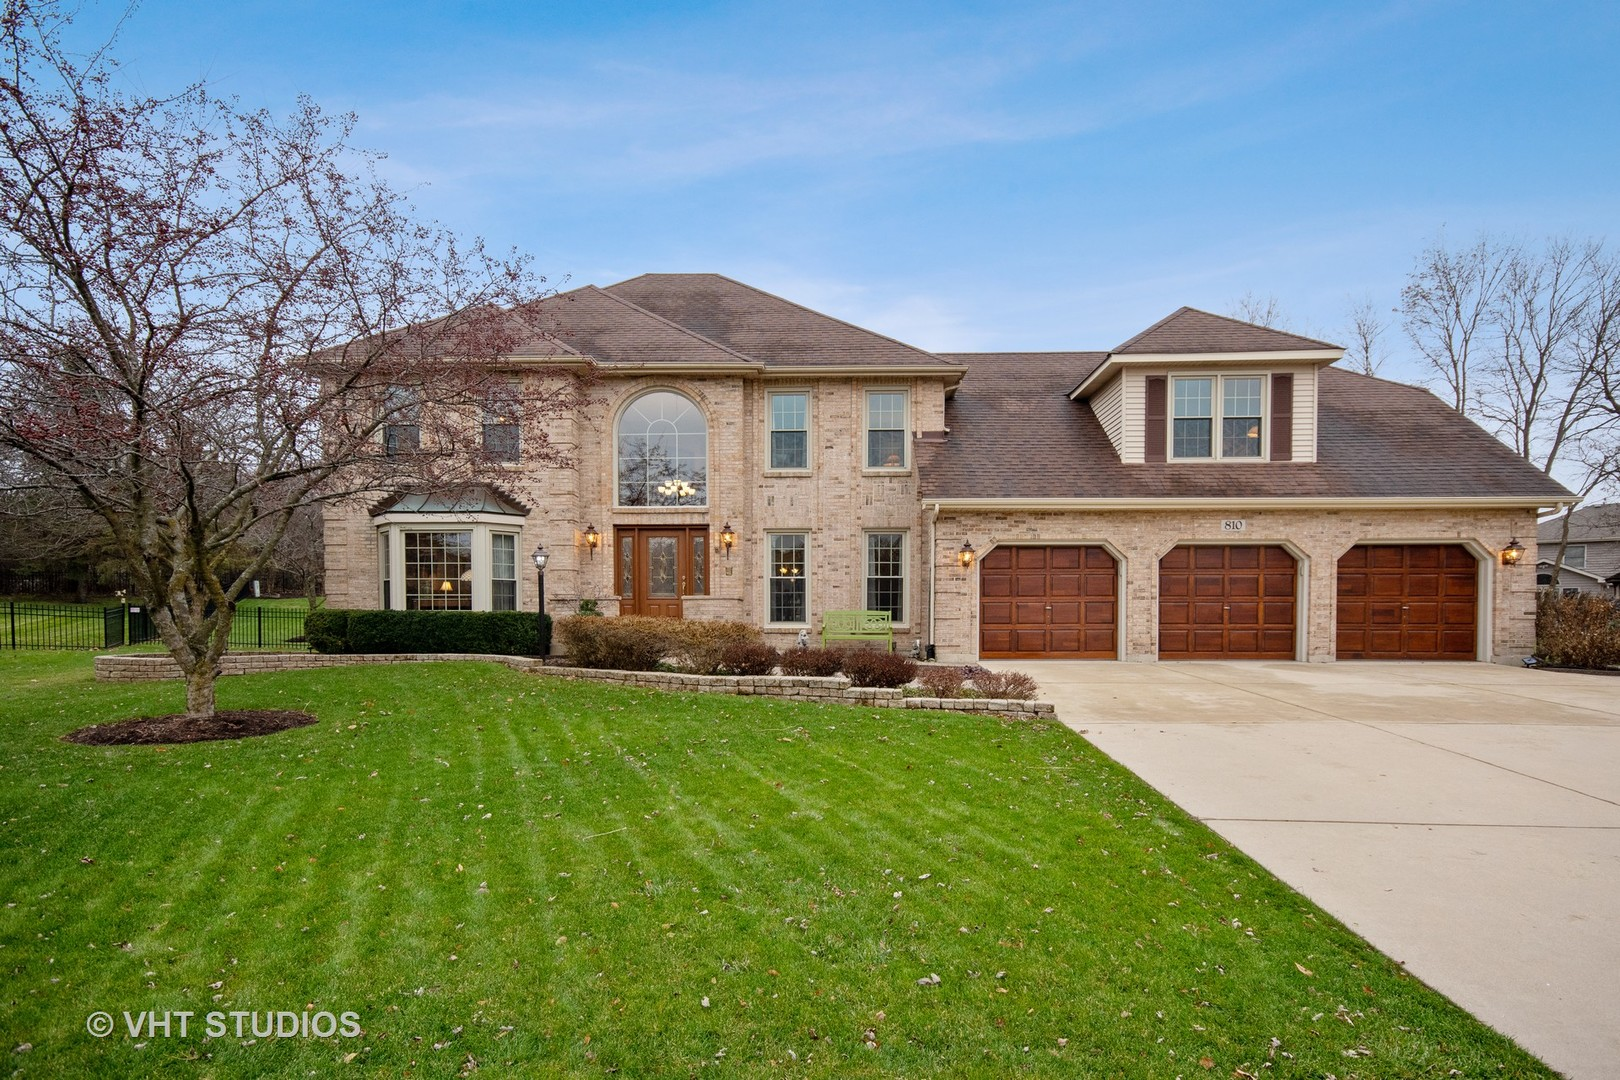 Photo for 810 Rotolo Court, Batavia, IL 60510 (MLS # 10583878)